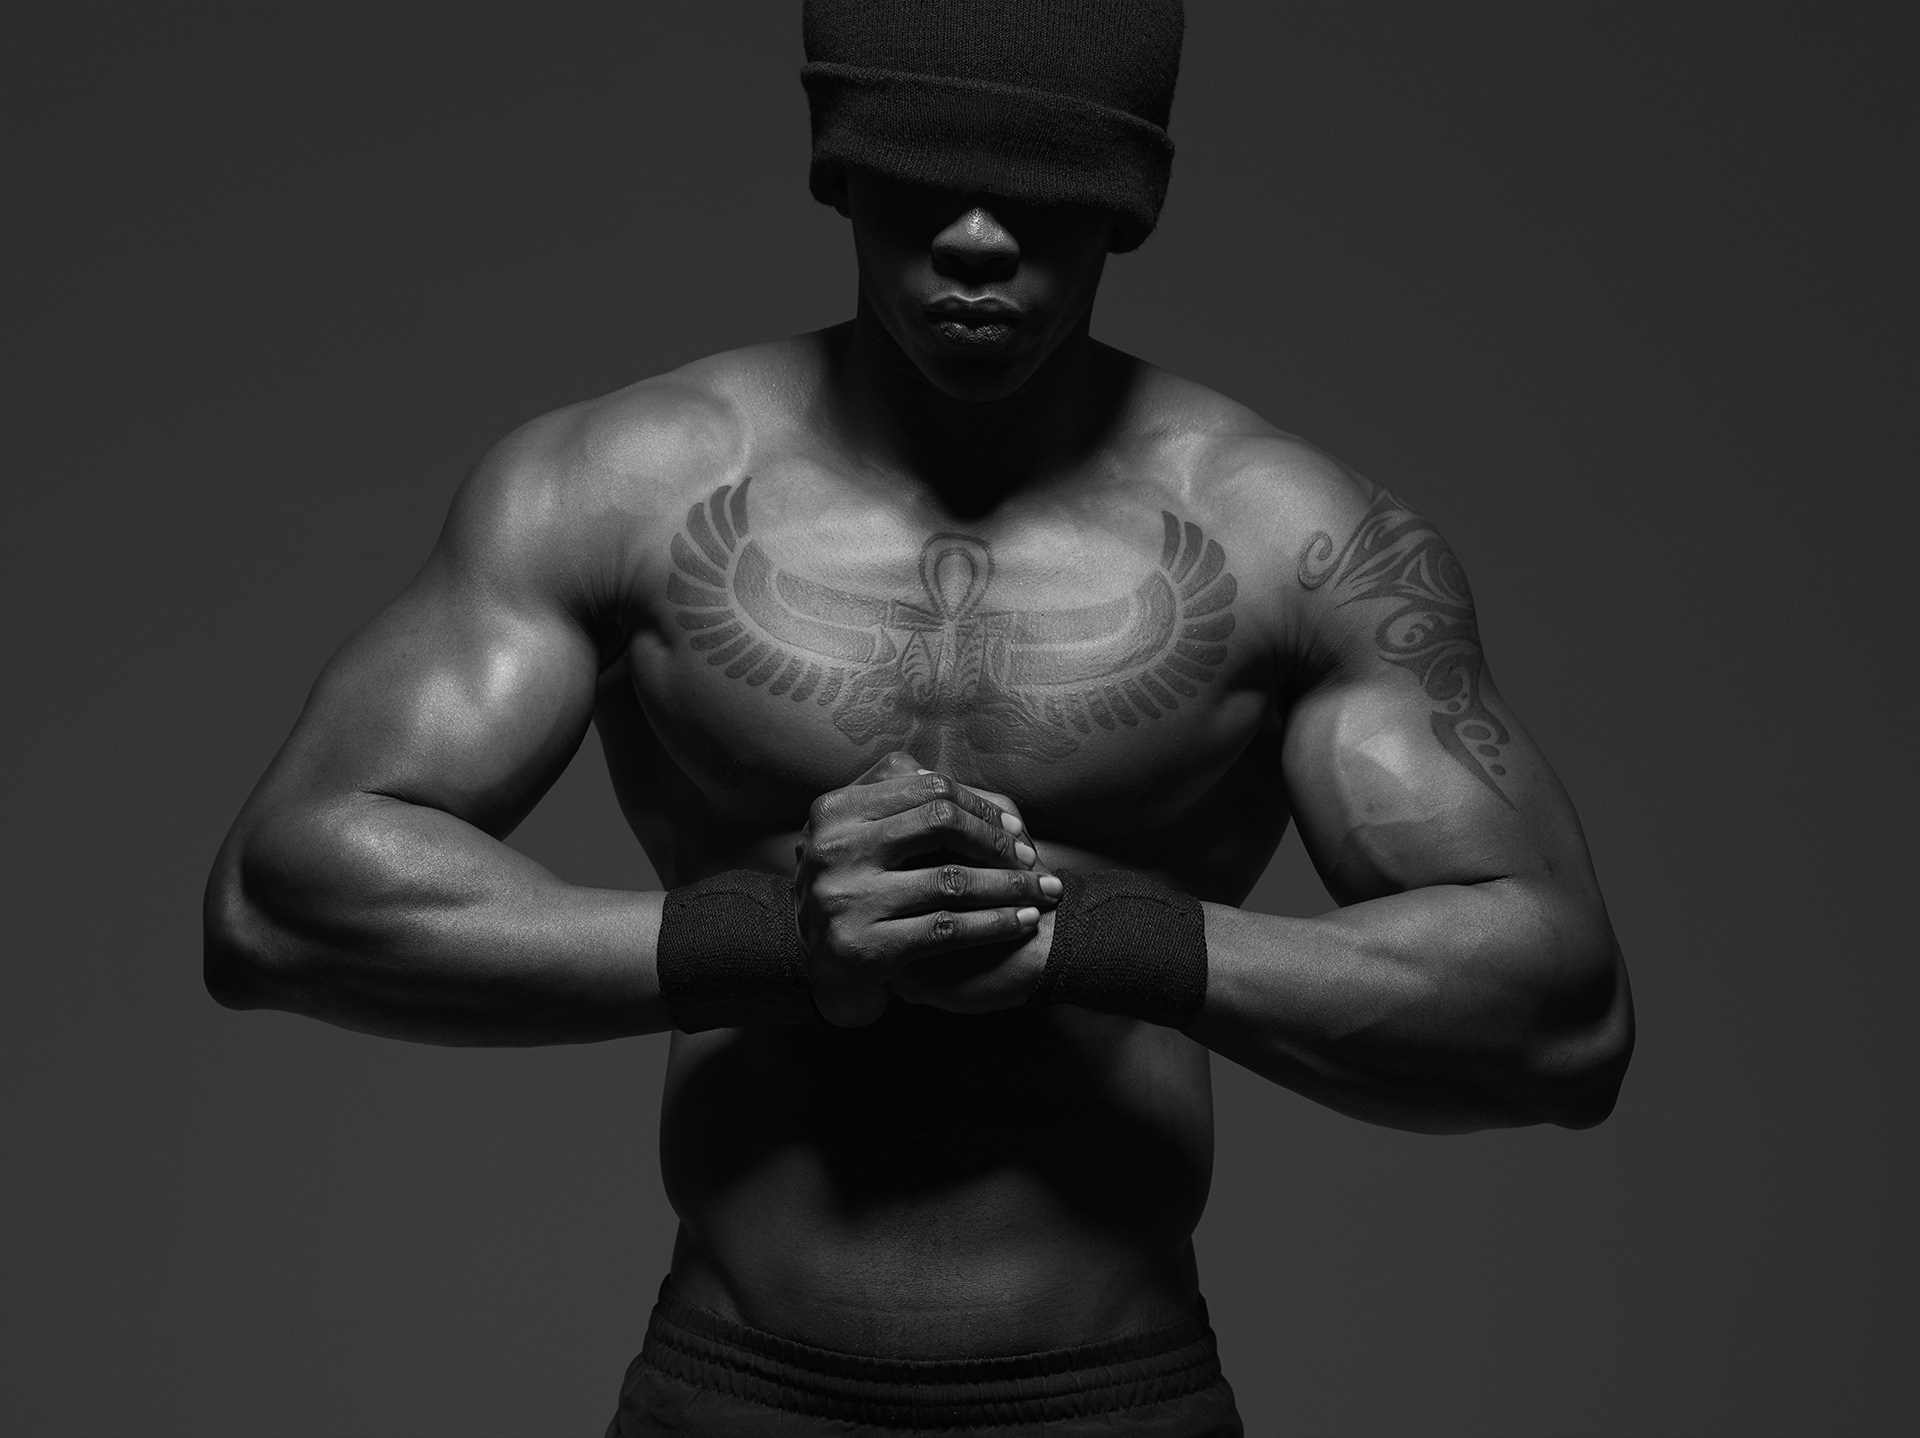 frederic mercier fashion photographer one color editorial portraits people art black and white muscle body athlete crossfit fitness urban boxing